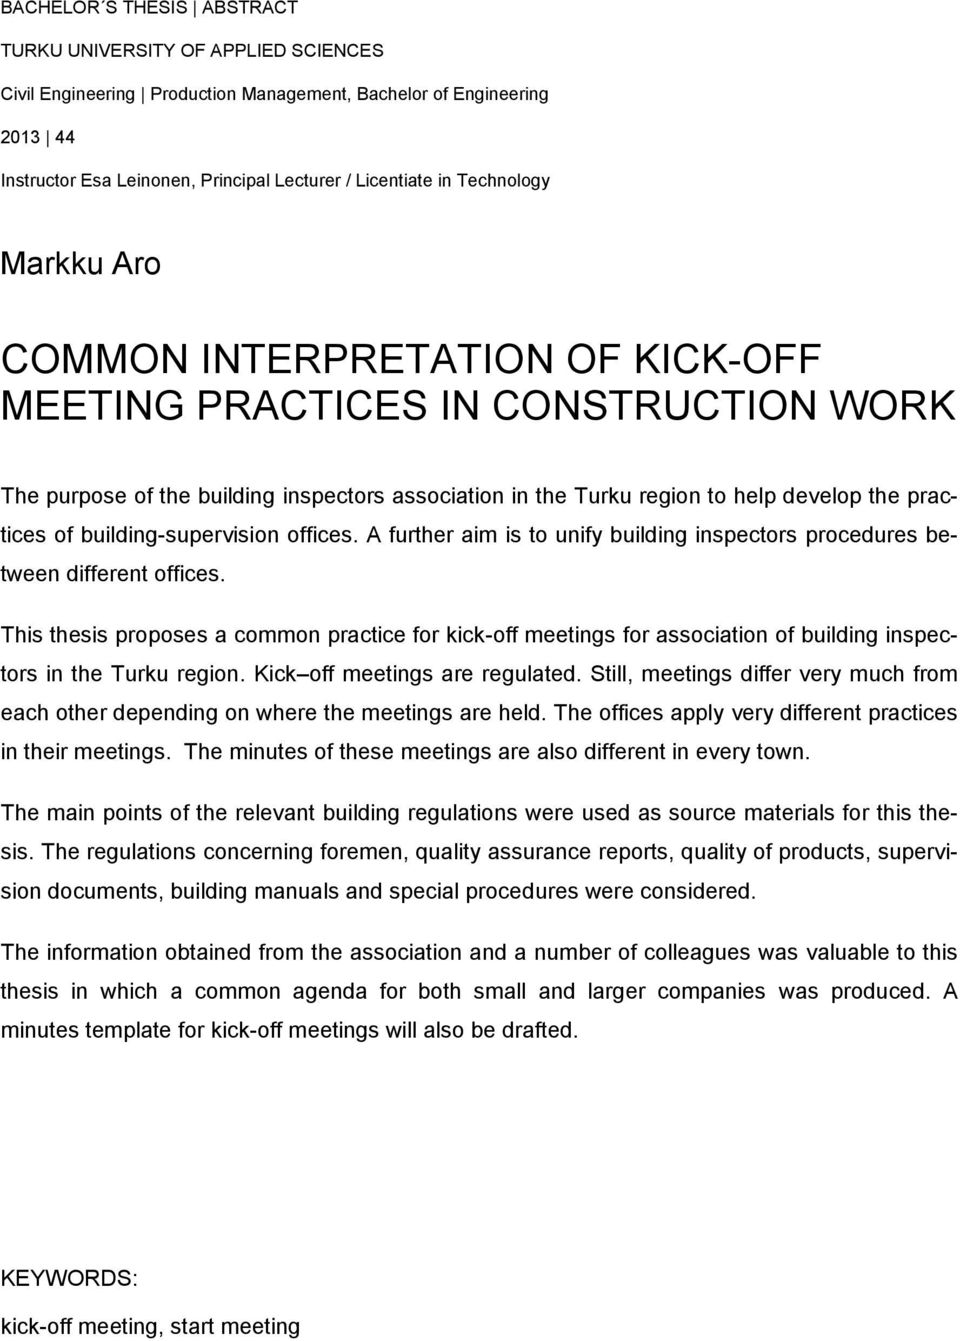 building-supervision offices. A further aim is to unify building inspectors procedures between different offices.